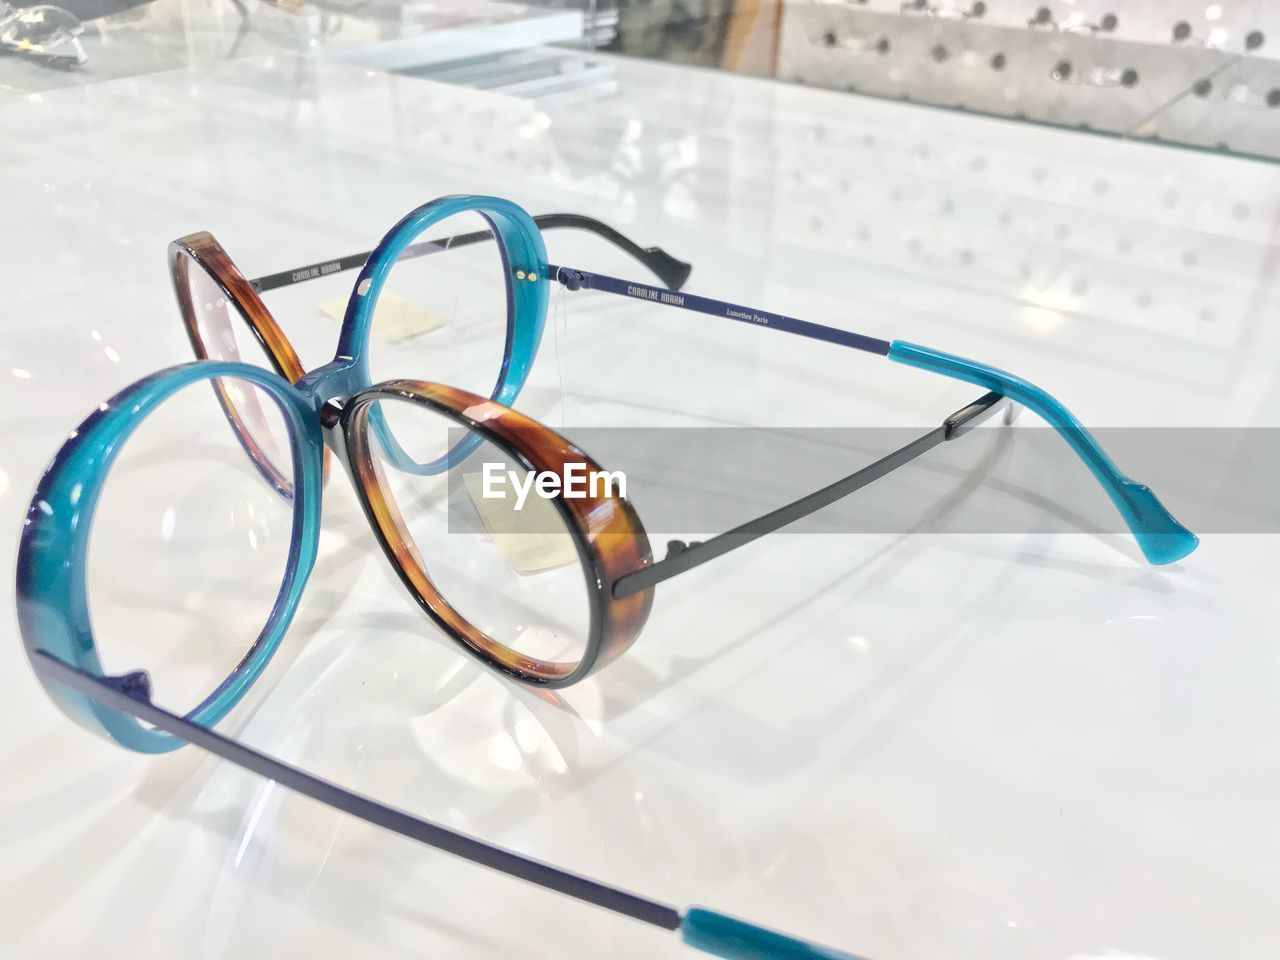 still life, close-up, table, glasses, high angle view, eyeglasses, indoors, medical equipment, healthcare and medicine, no people, focus on foreground, security, protection, eyesight, white color, stethoscope, personal accessory, blue, glass - material, transparent, eyewear